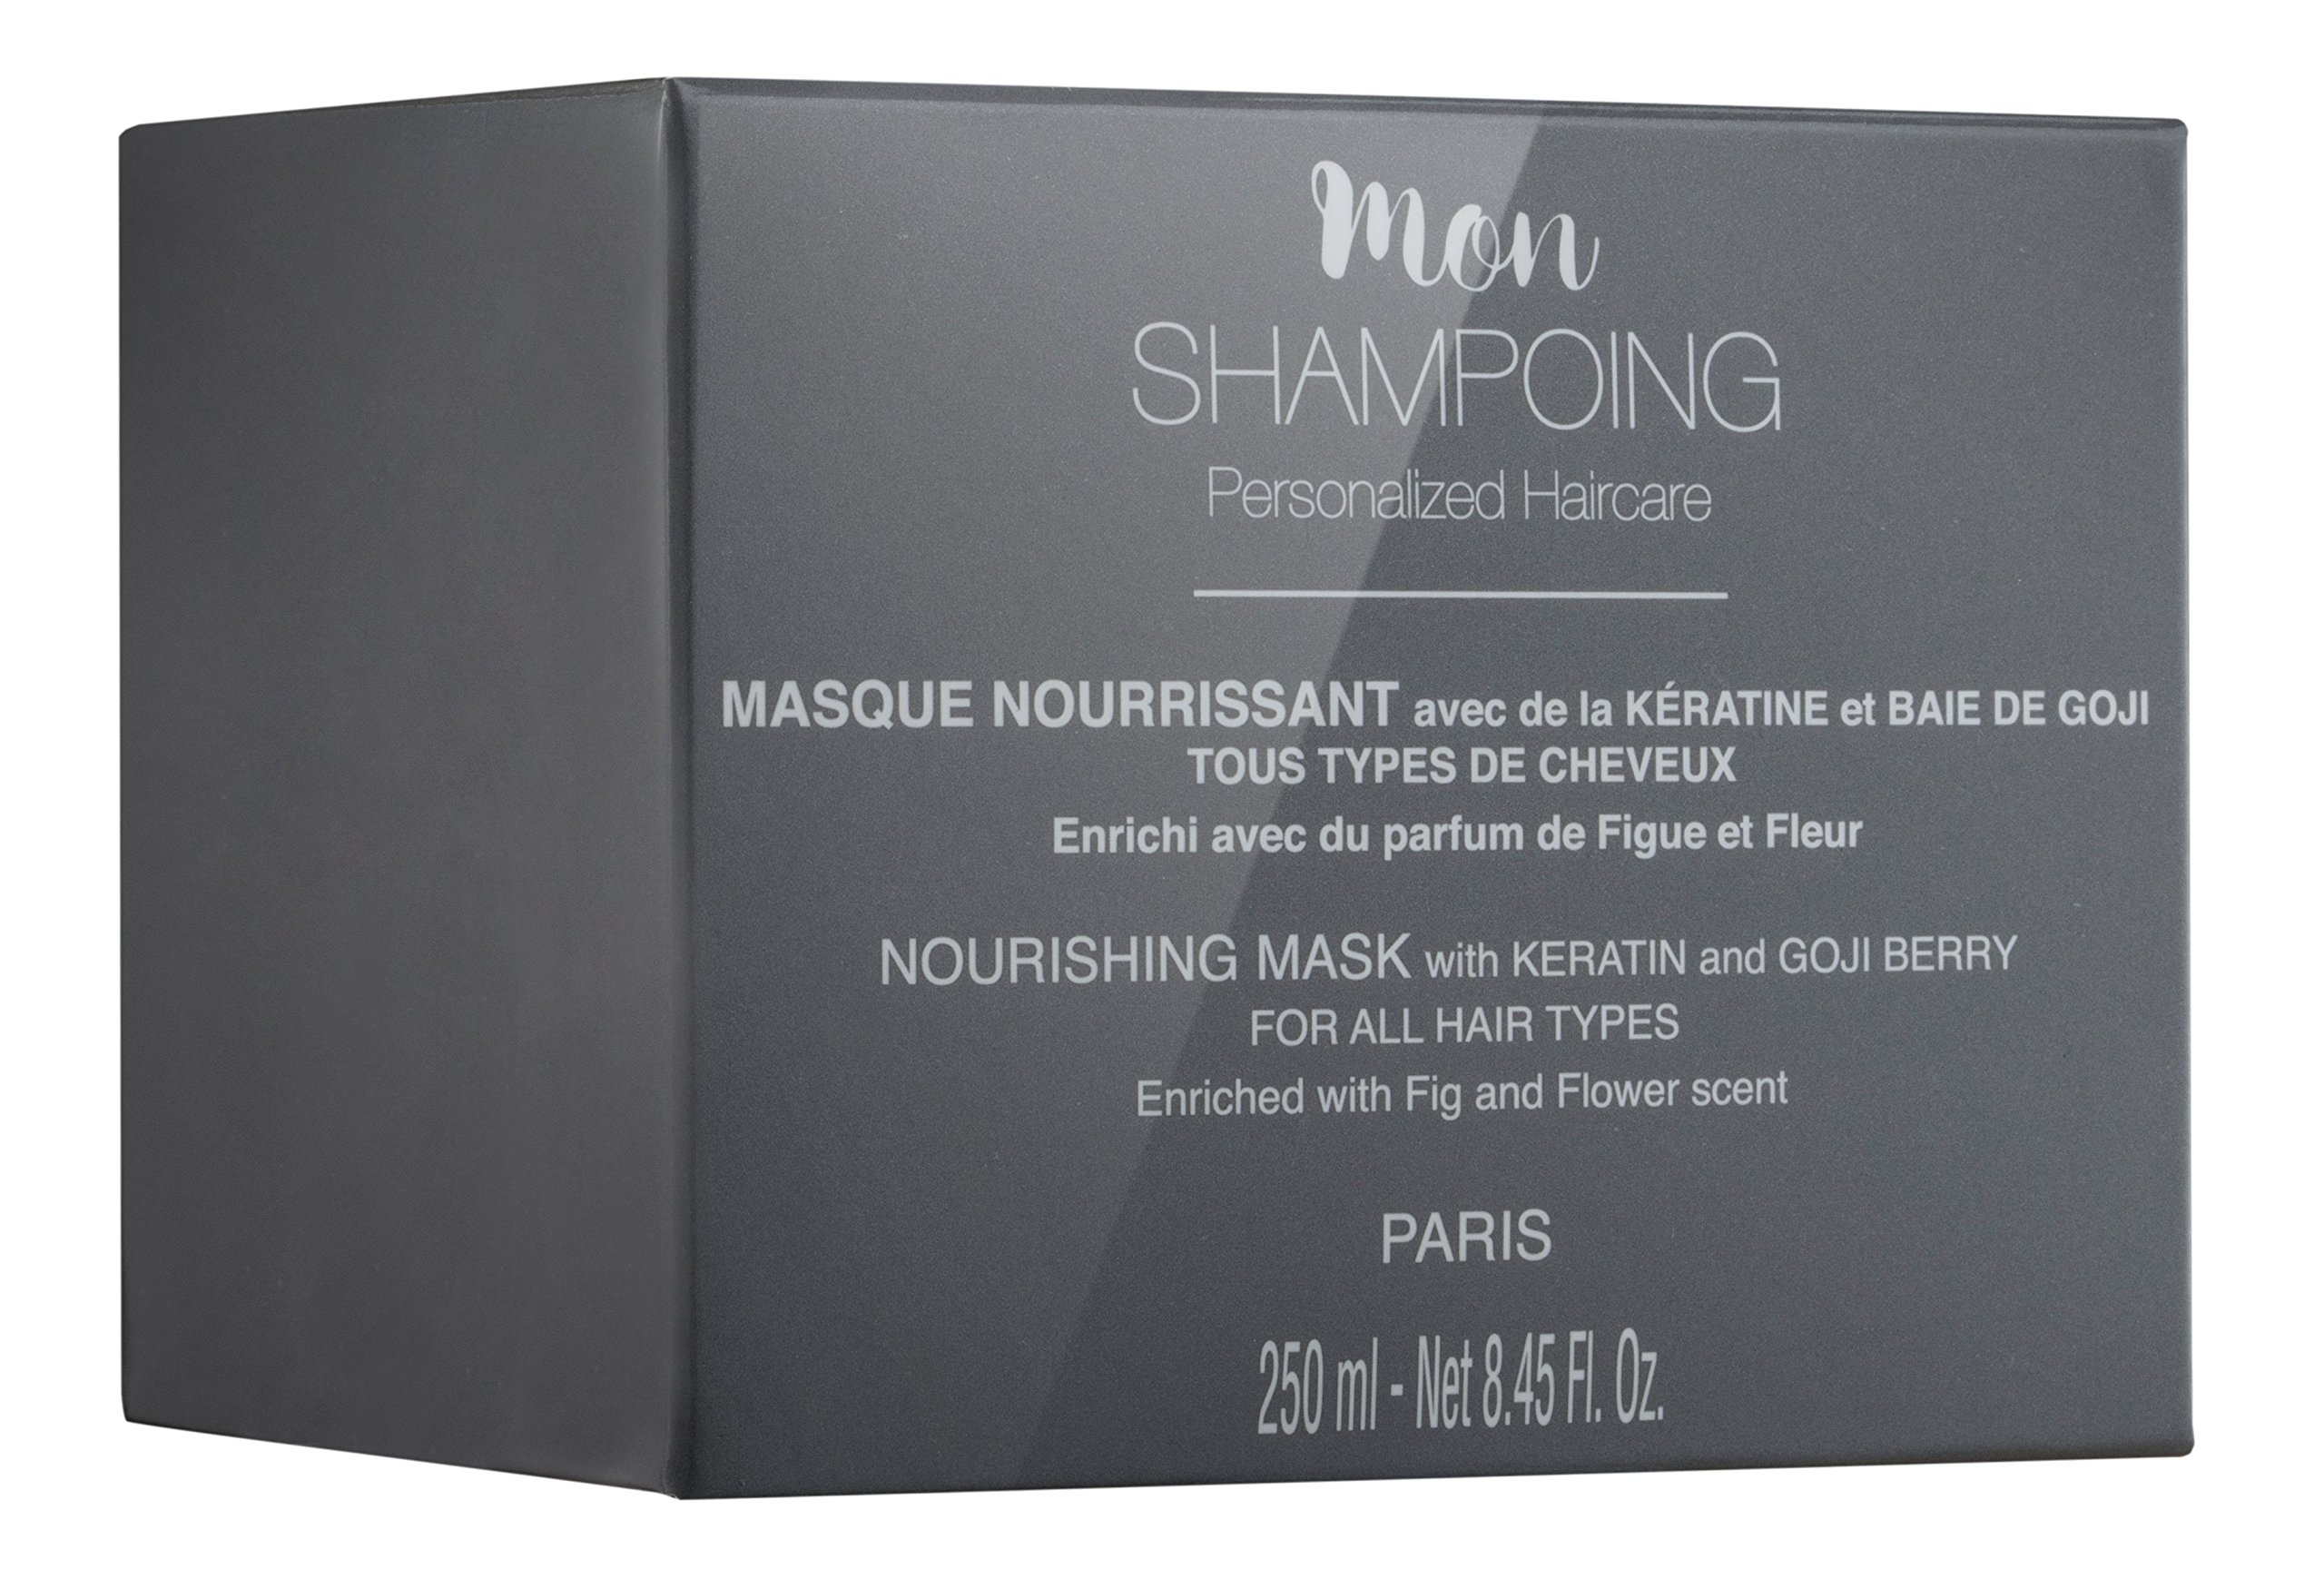 Mon Shampoing nourishing MASK with KERATIN and GOJI BERRY – ALL HAIR TYPES – 250 ml by Mon Shampoing (Image #3)